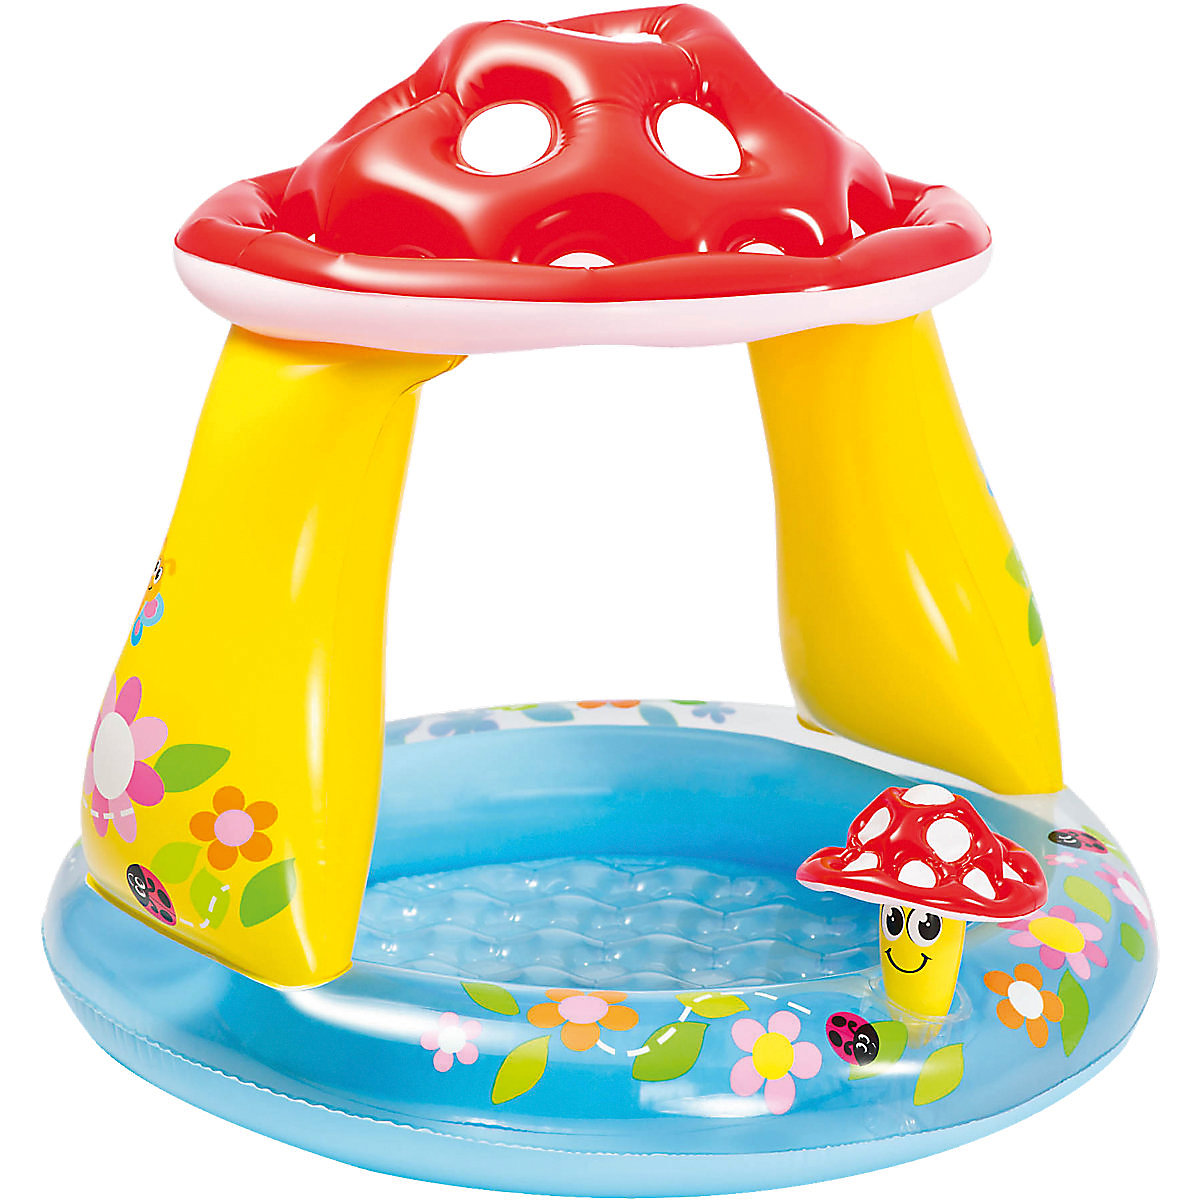 INTEX Swimming Pool 7019683 inflatable pools Accessories Activity & Gear tub Kids Baby for children china inflatable slides supplier large inflatable slide toys for children playground ocean world theme